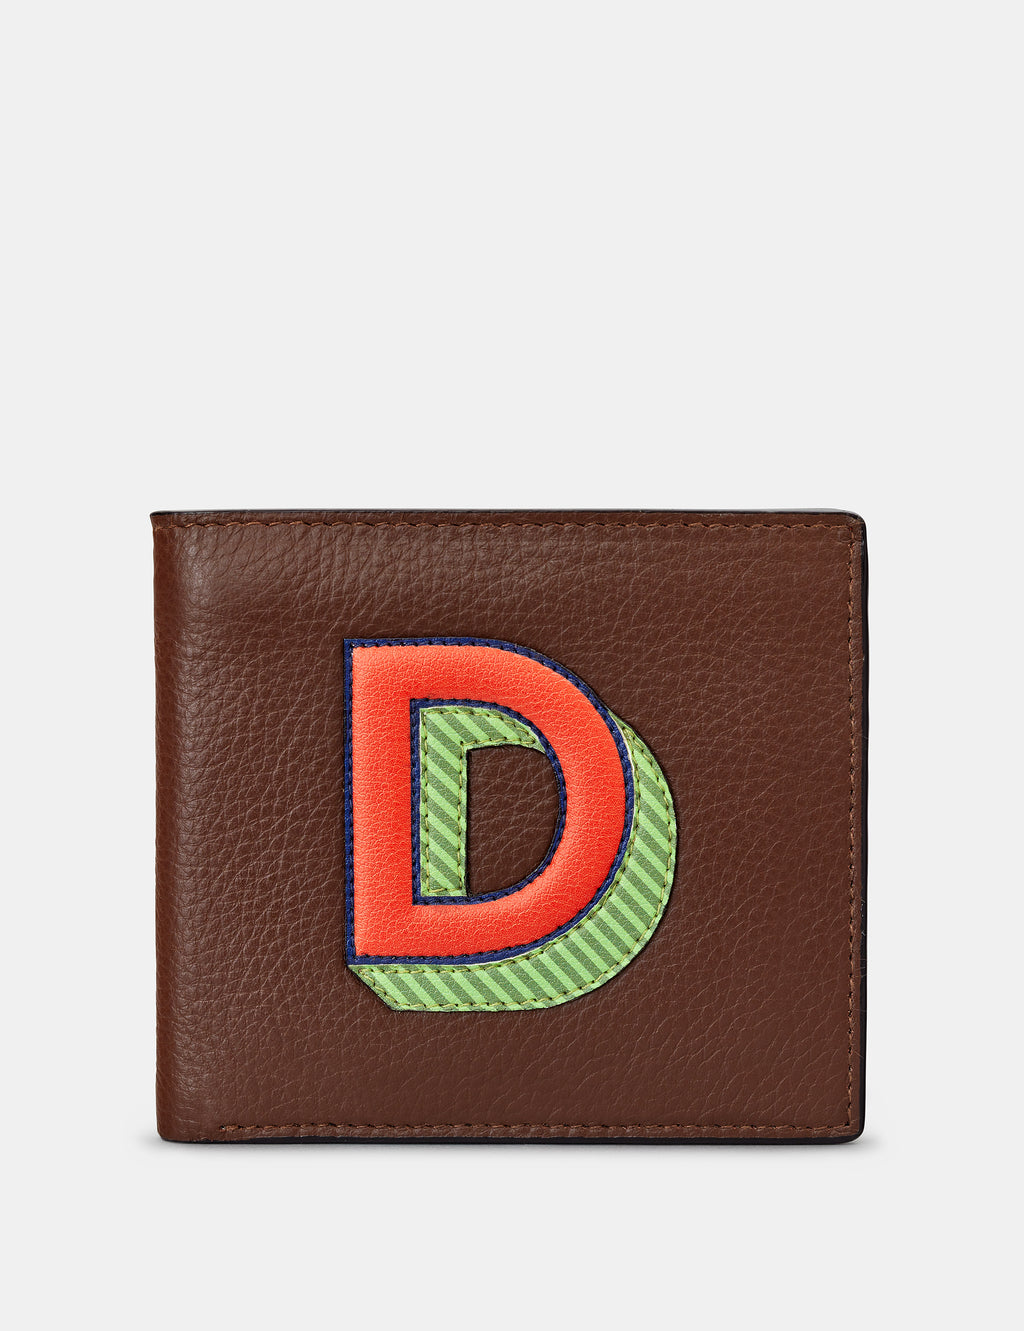 D Initial Brown Leather Wallet